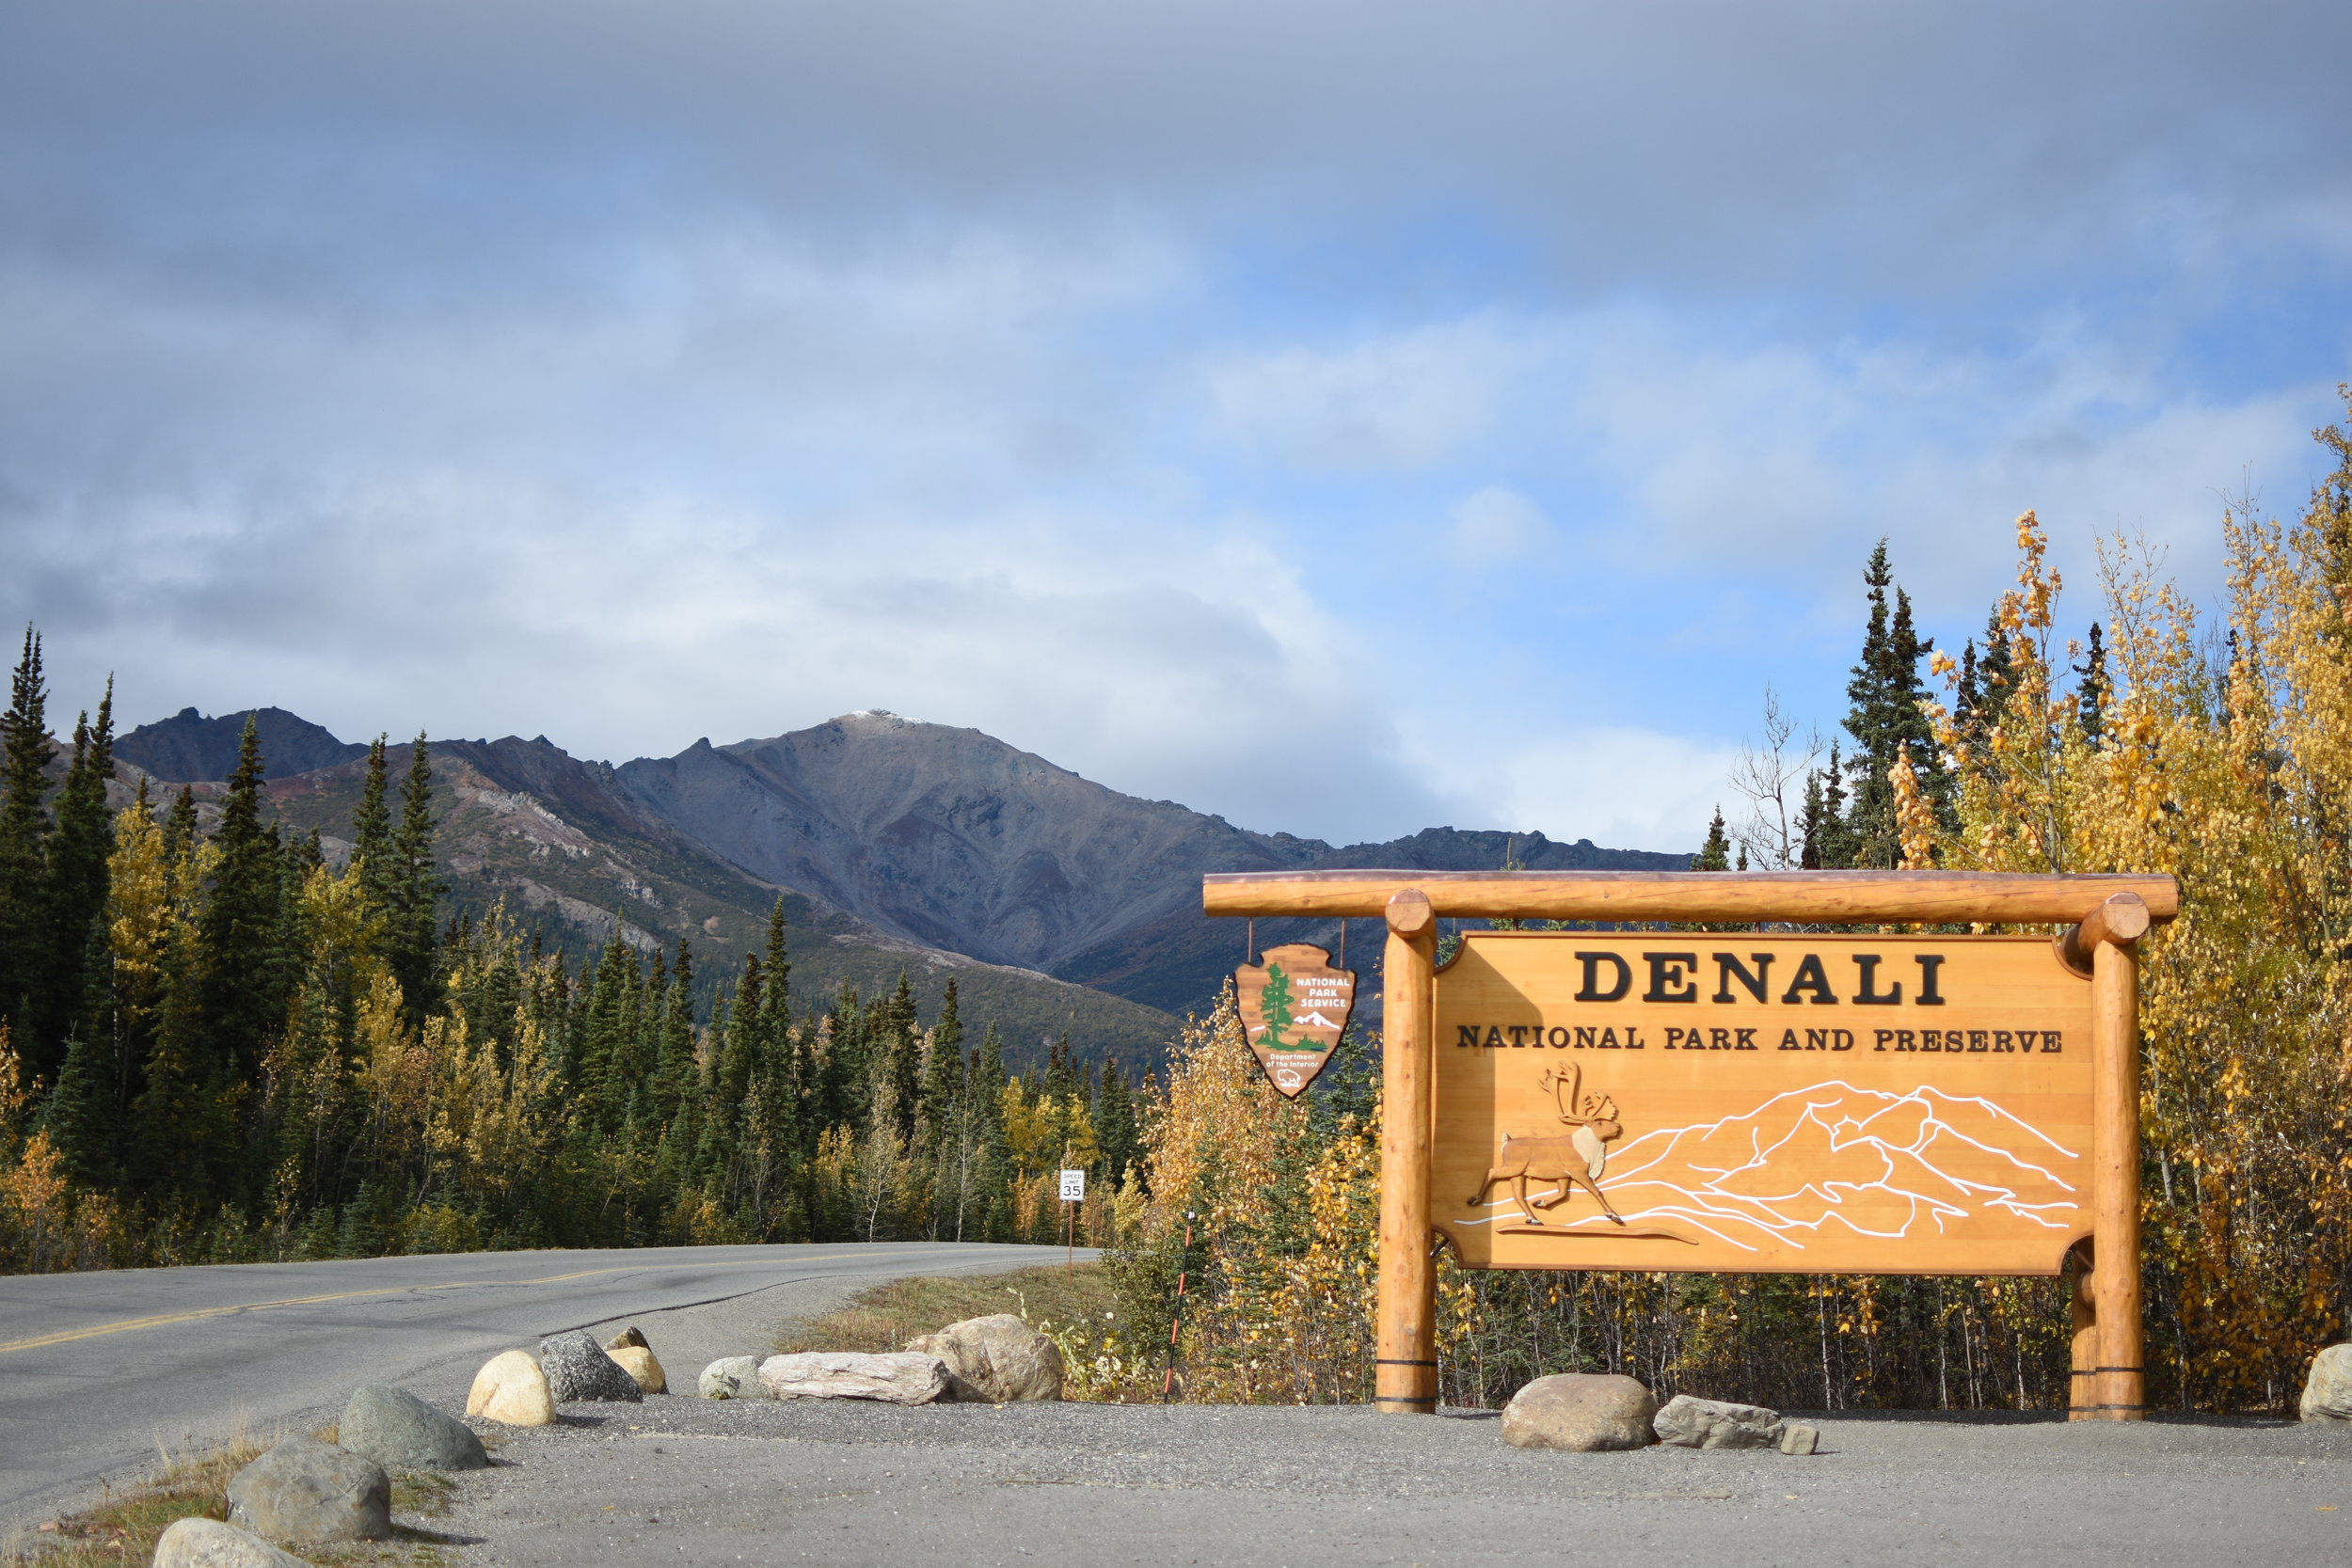 The stunning entrance to Denali National Park.